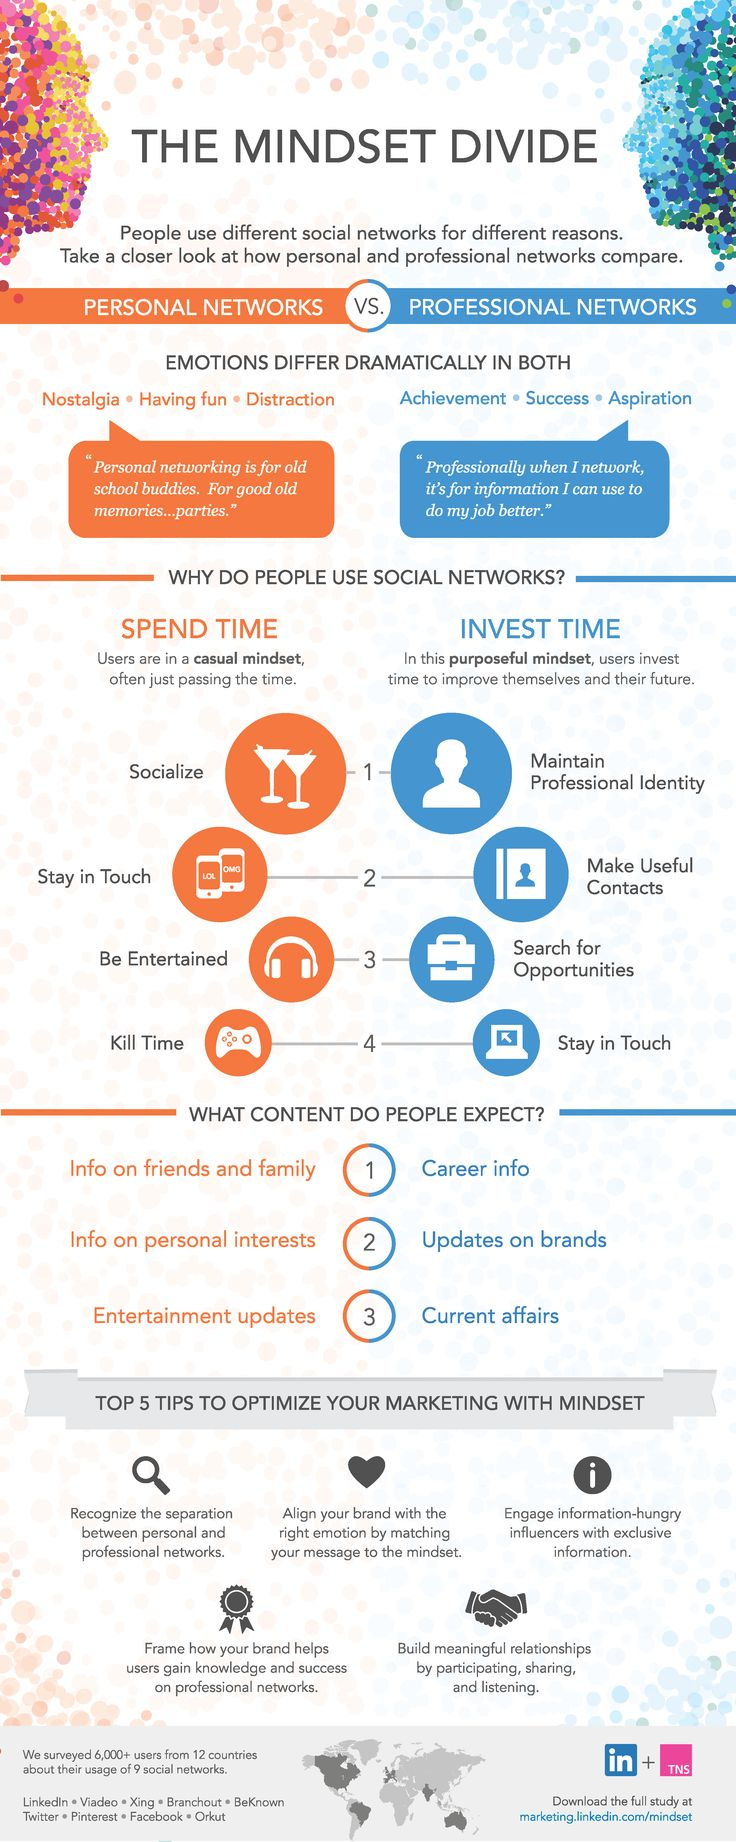 LinkedIn Looks At The Professional Vs. Personal Social Network Mindset [Infographic]